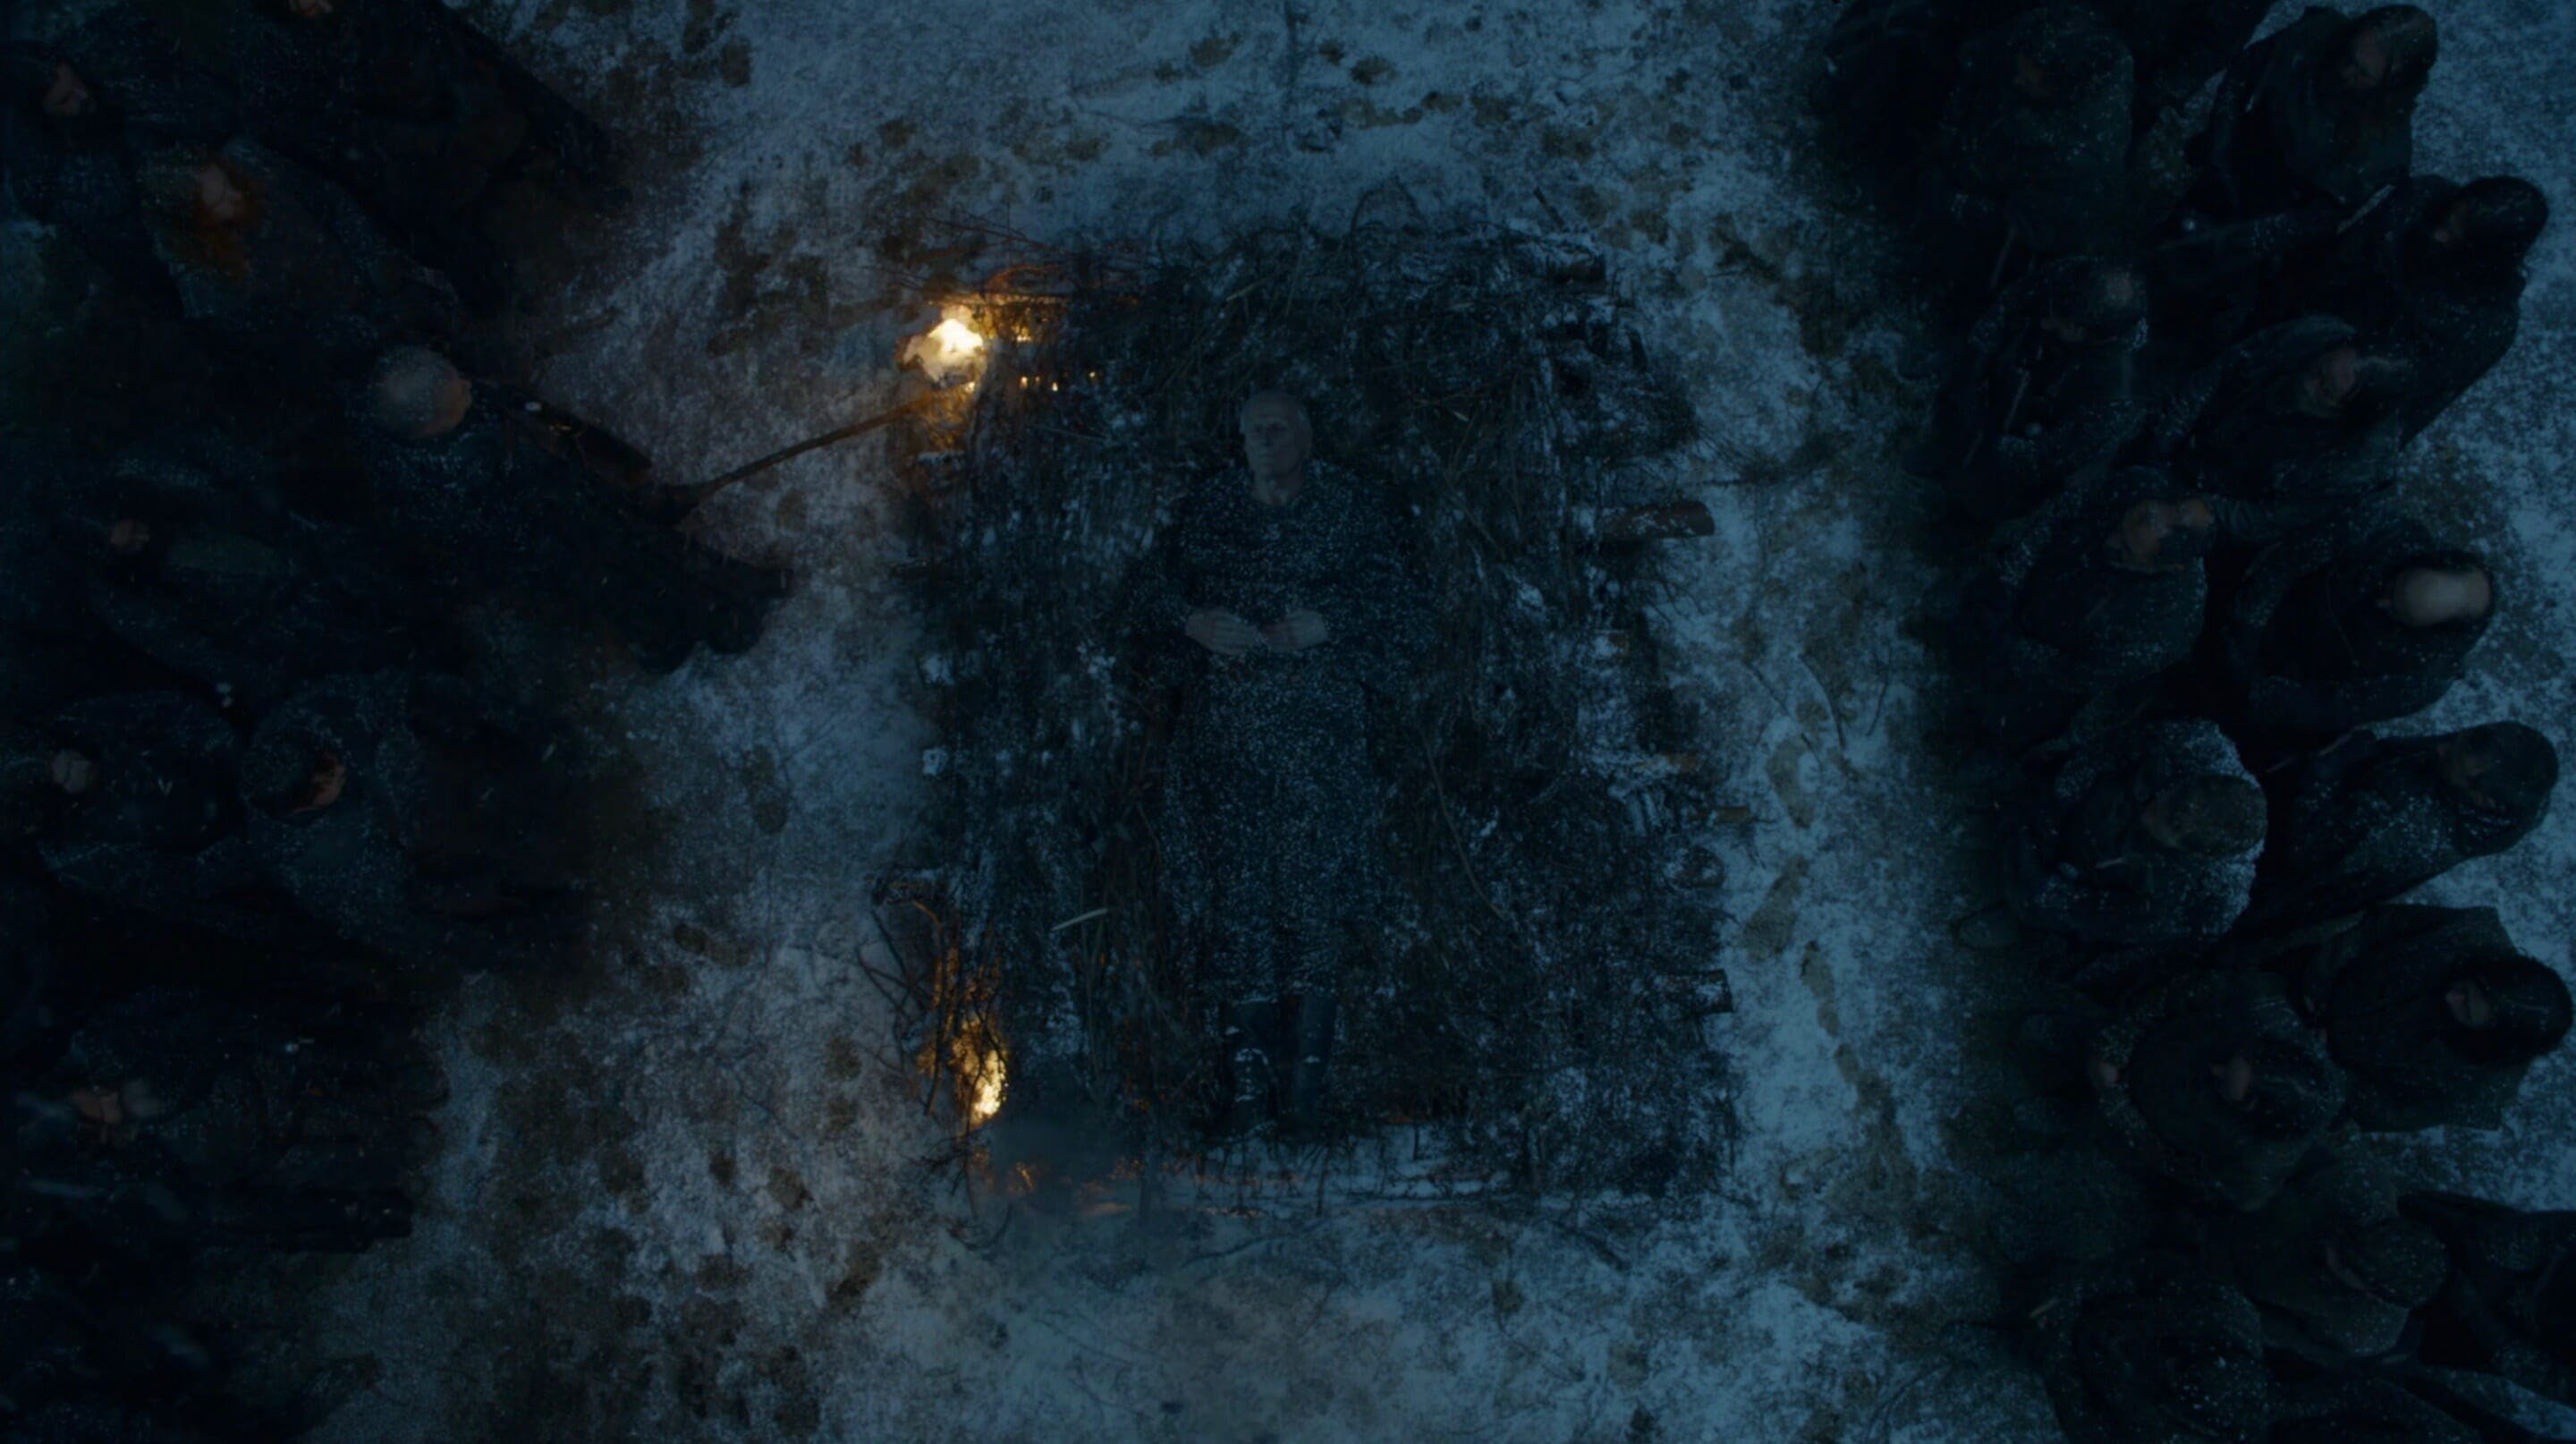 game of thrones night's watch burial maester aemon